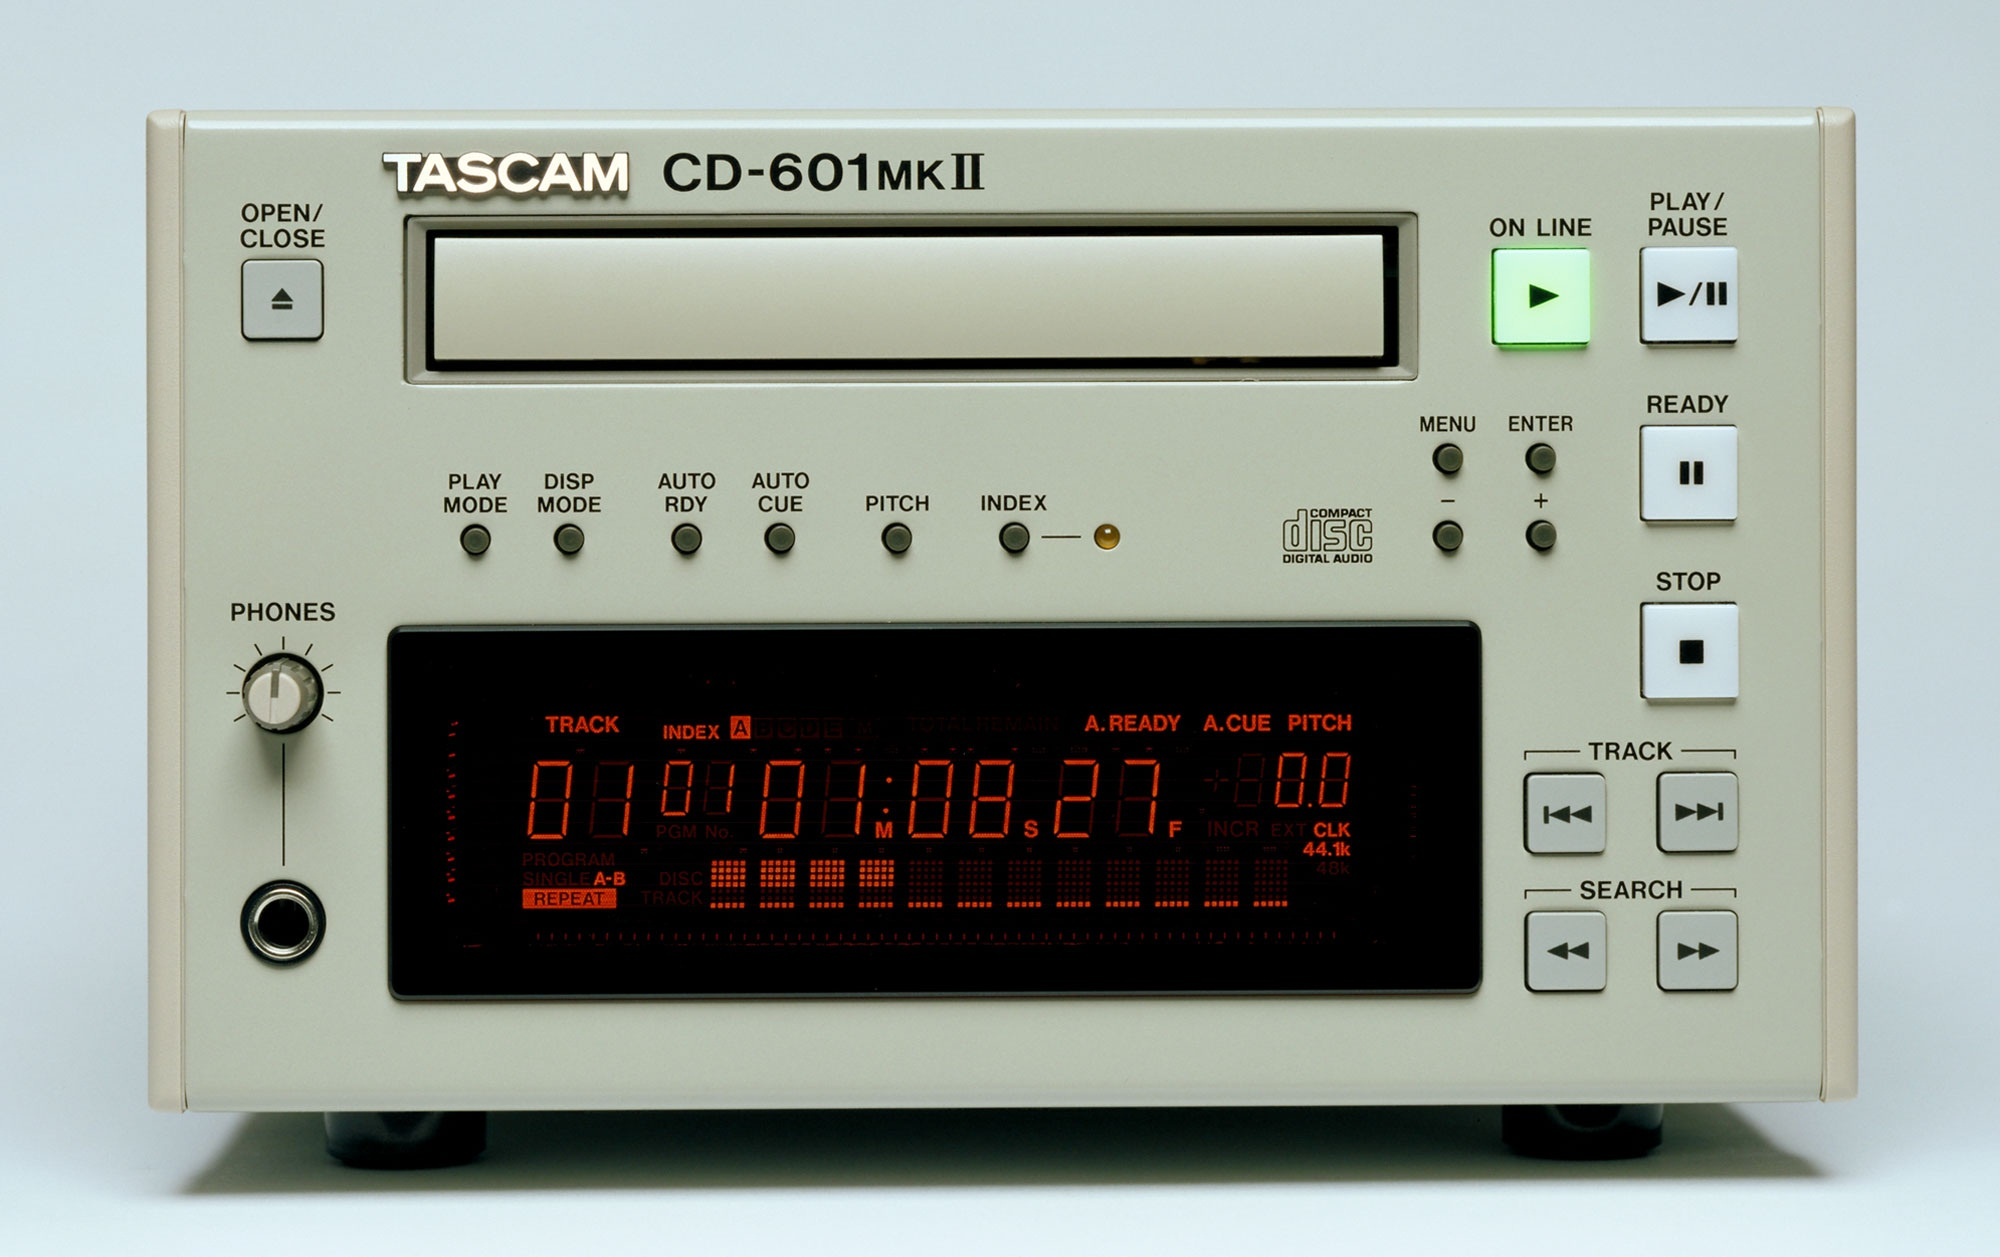 TASCAM CD-601MKll Compact Disc Player